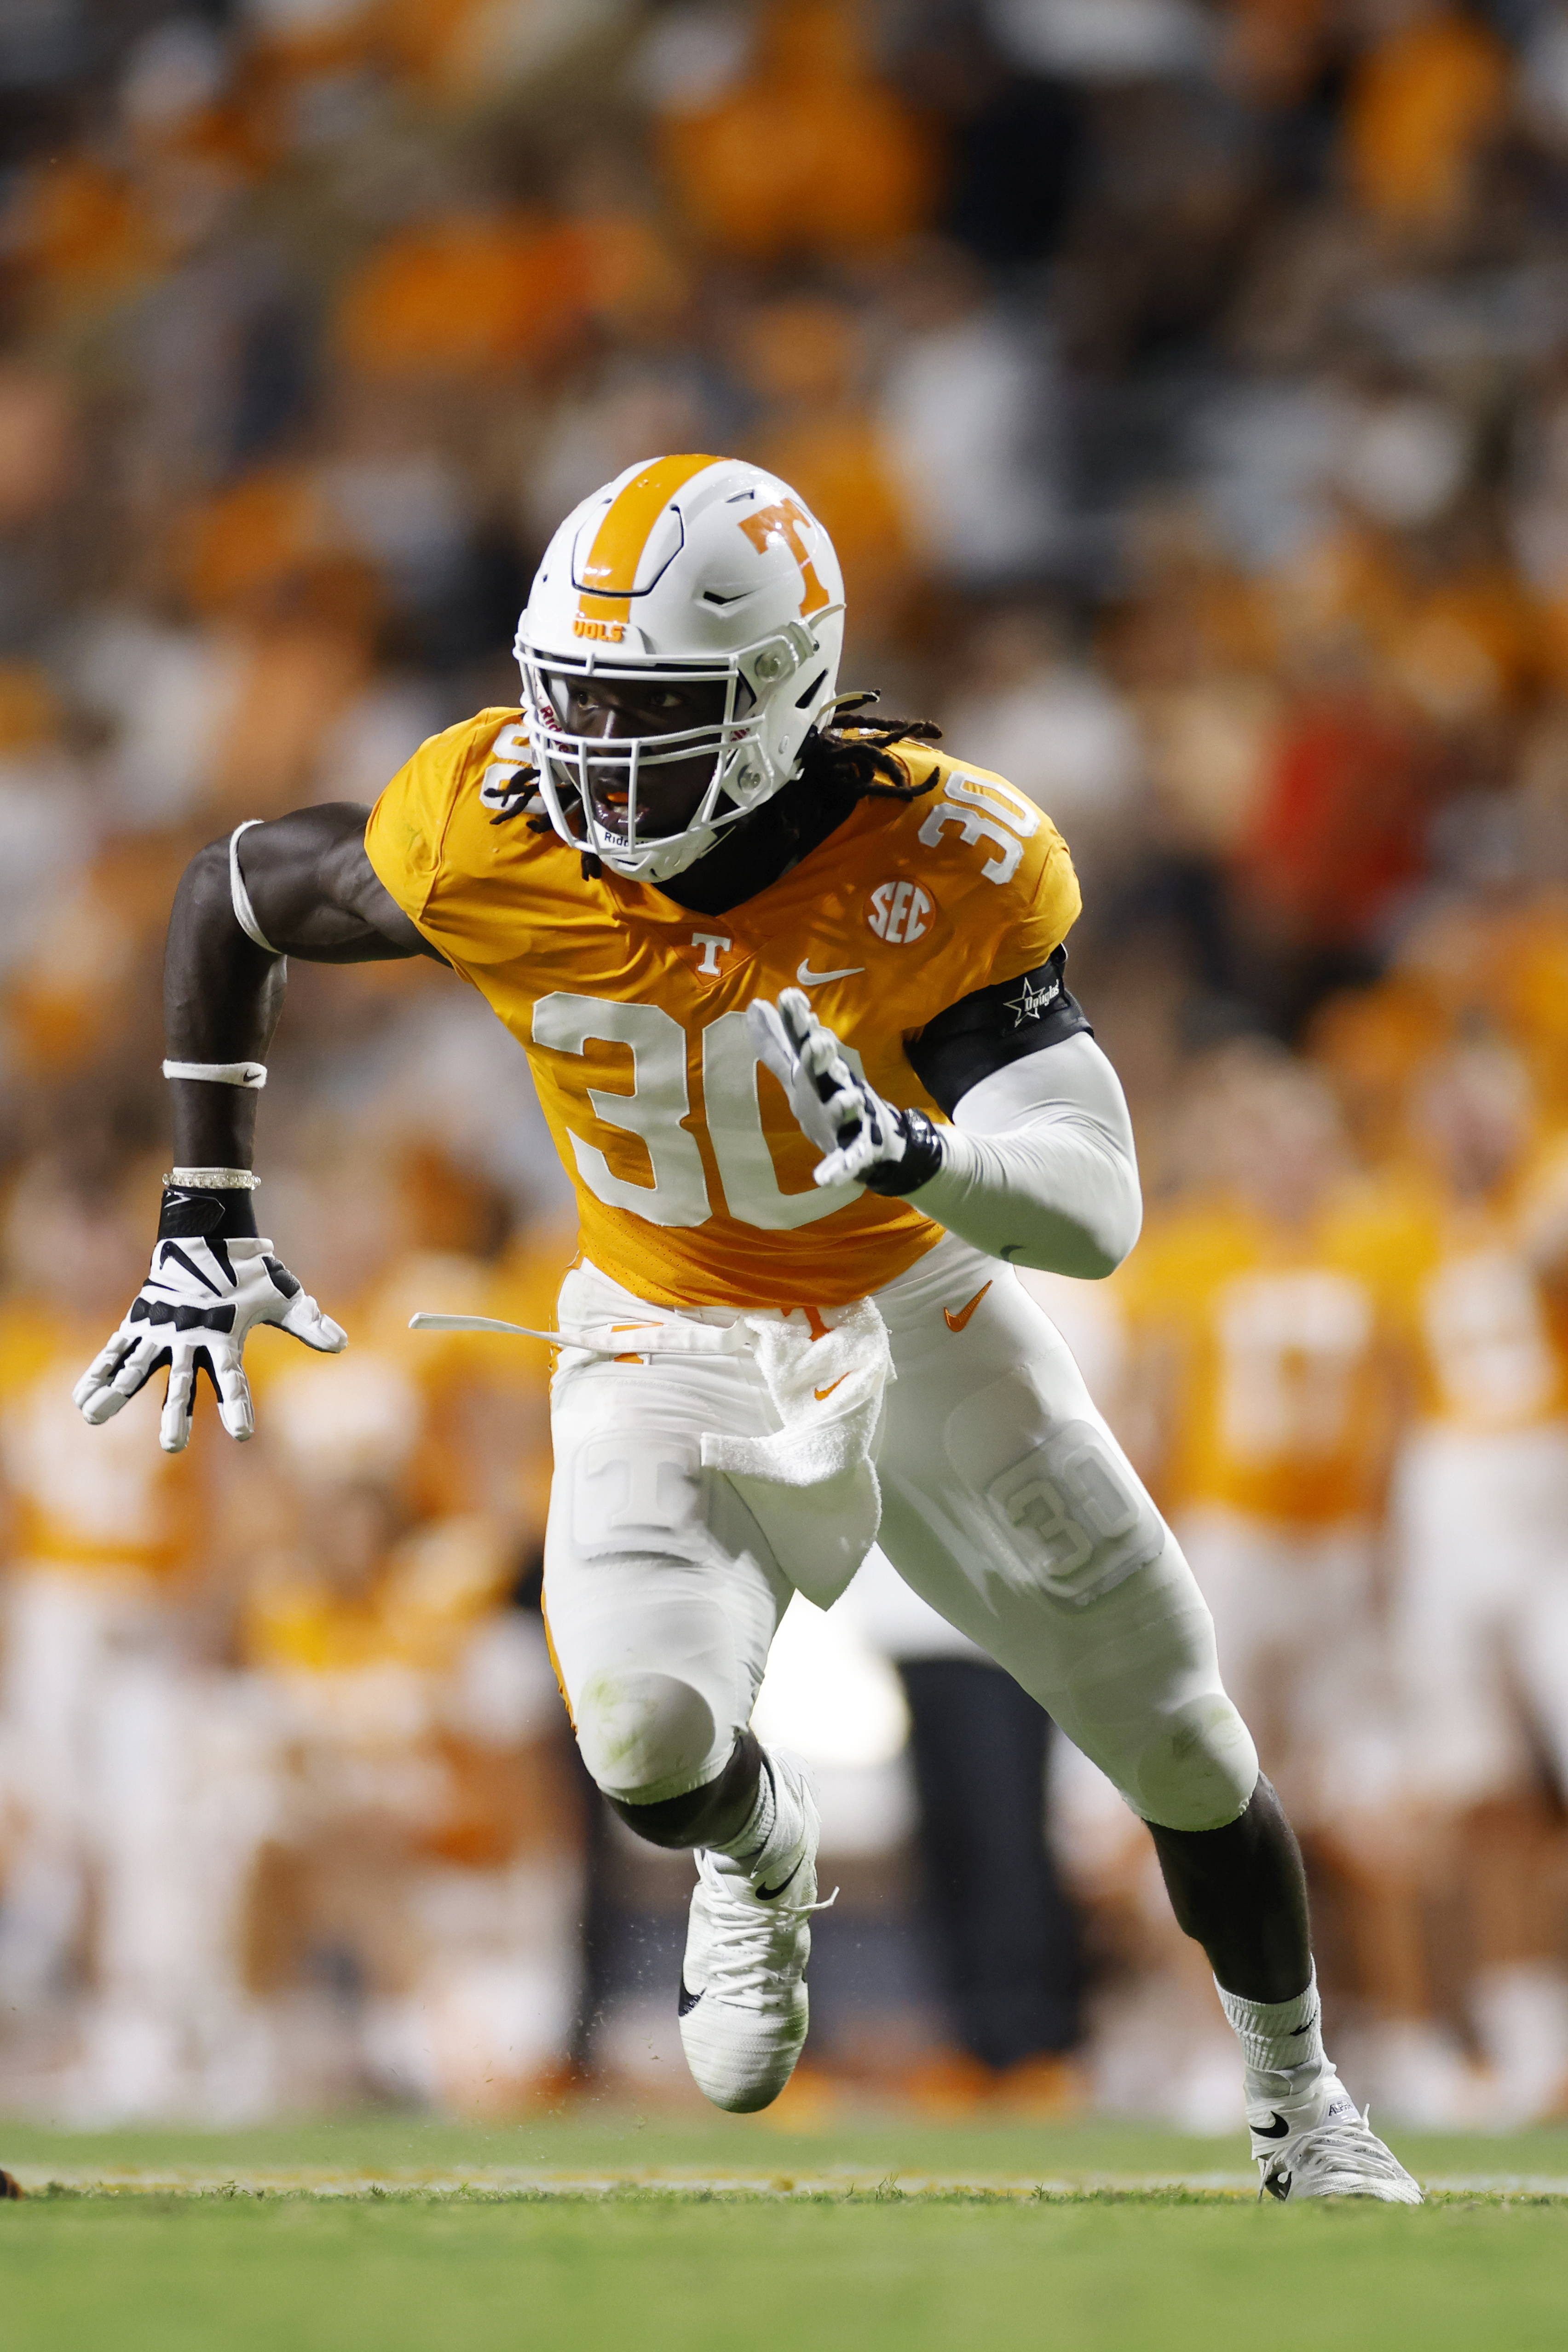 Tennessee Volunteers linebacker Roman Harrison rushes on defense during a college football game against the Bowling Green Falcons on Sept. 2, 2021 at Neyland Stadium in Knoxville, Tennessee.